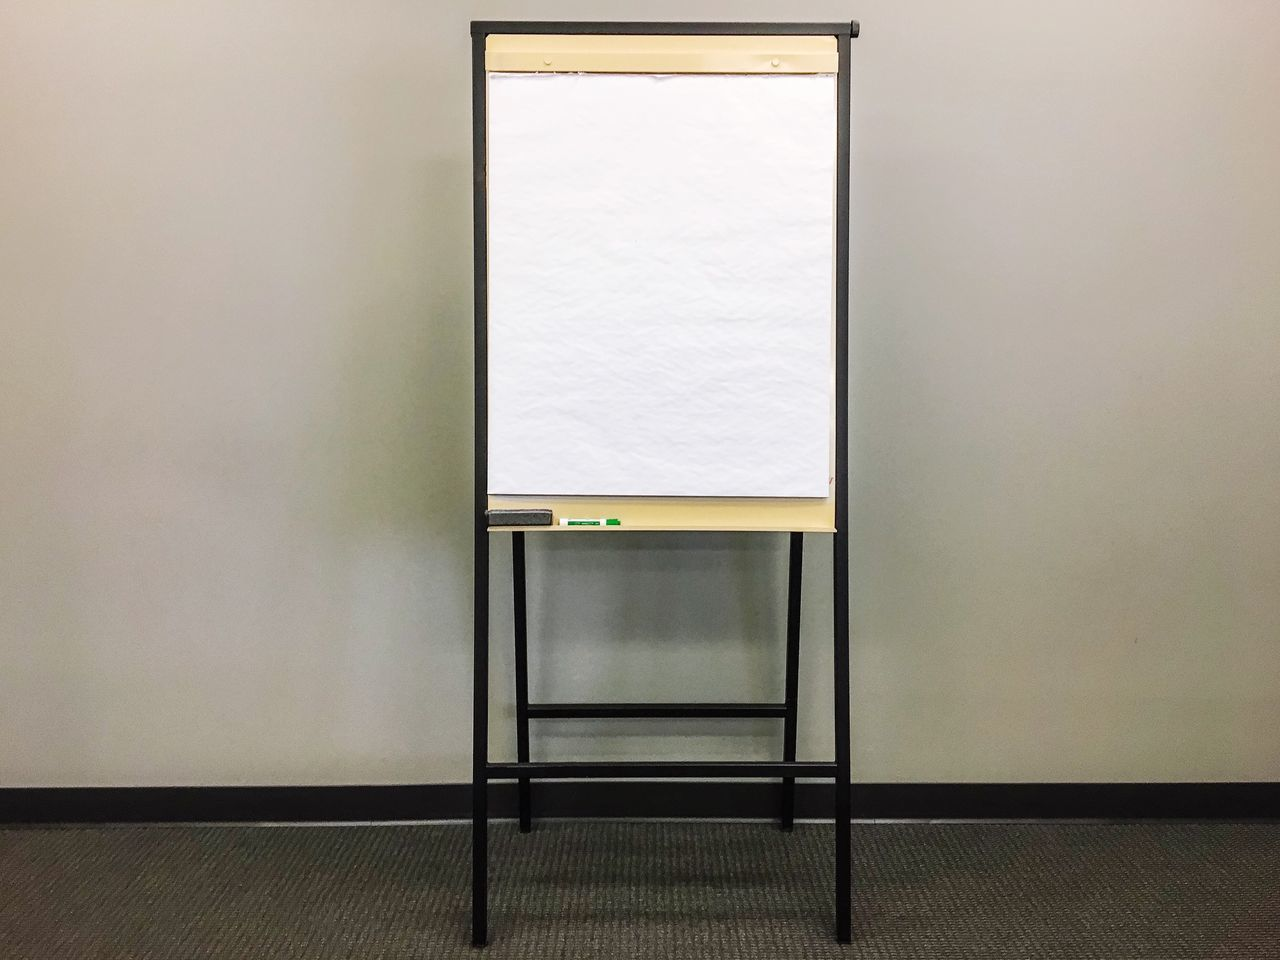 Indoors  No People Architecture Instructing Artist Simple Teaching Presentation Making Goals Planning Ahead Making Plans Meeting Room Office Meetings Draw Draw Up Plan Planning Start From Scratch Blank Canvas Blank Space Blank Paper Easel Close-up Education